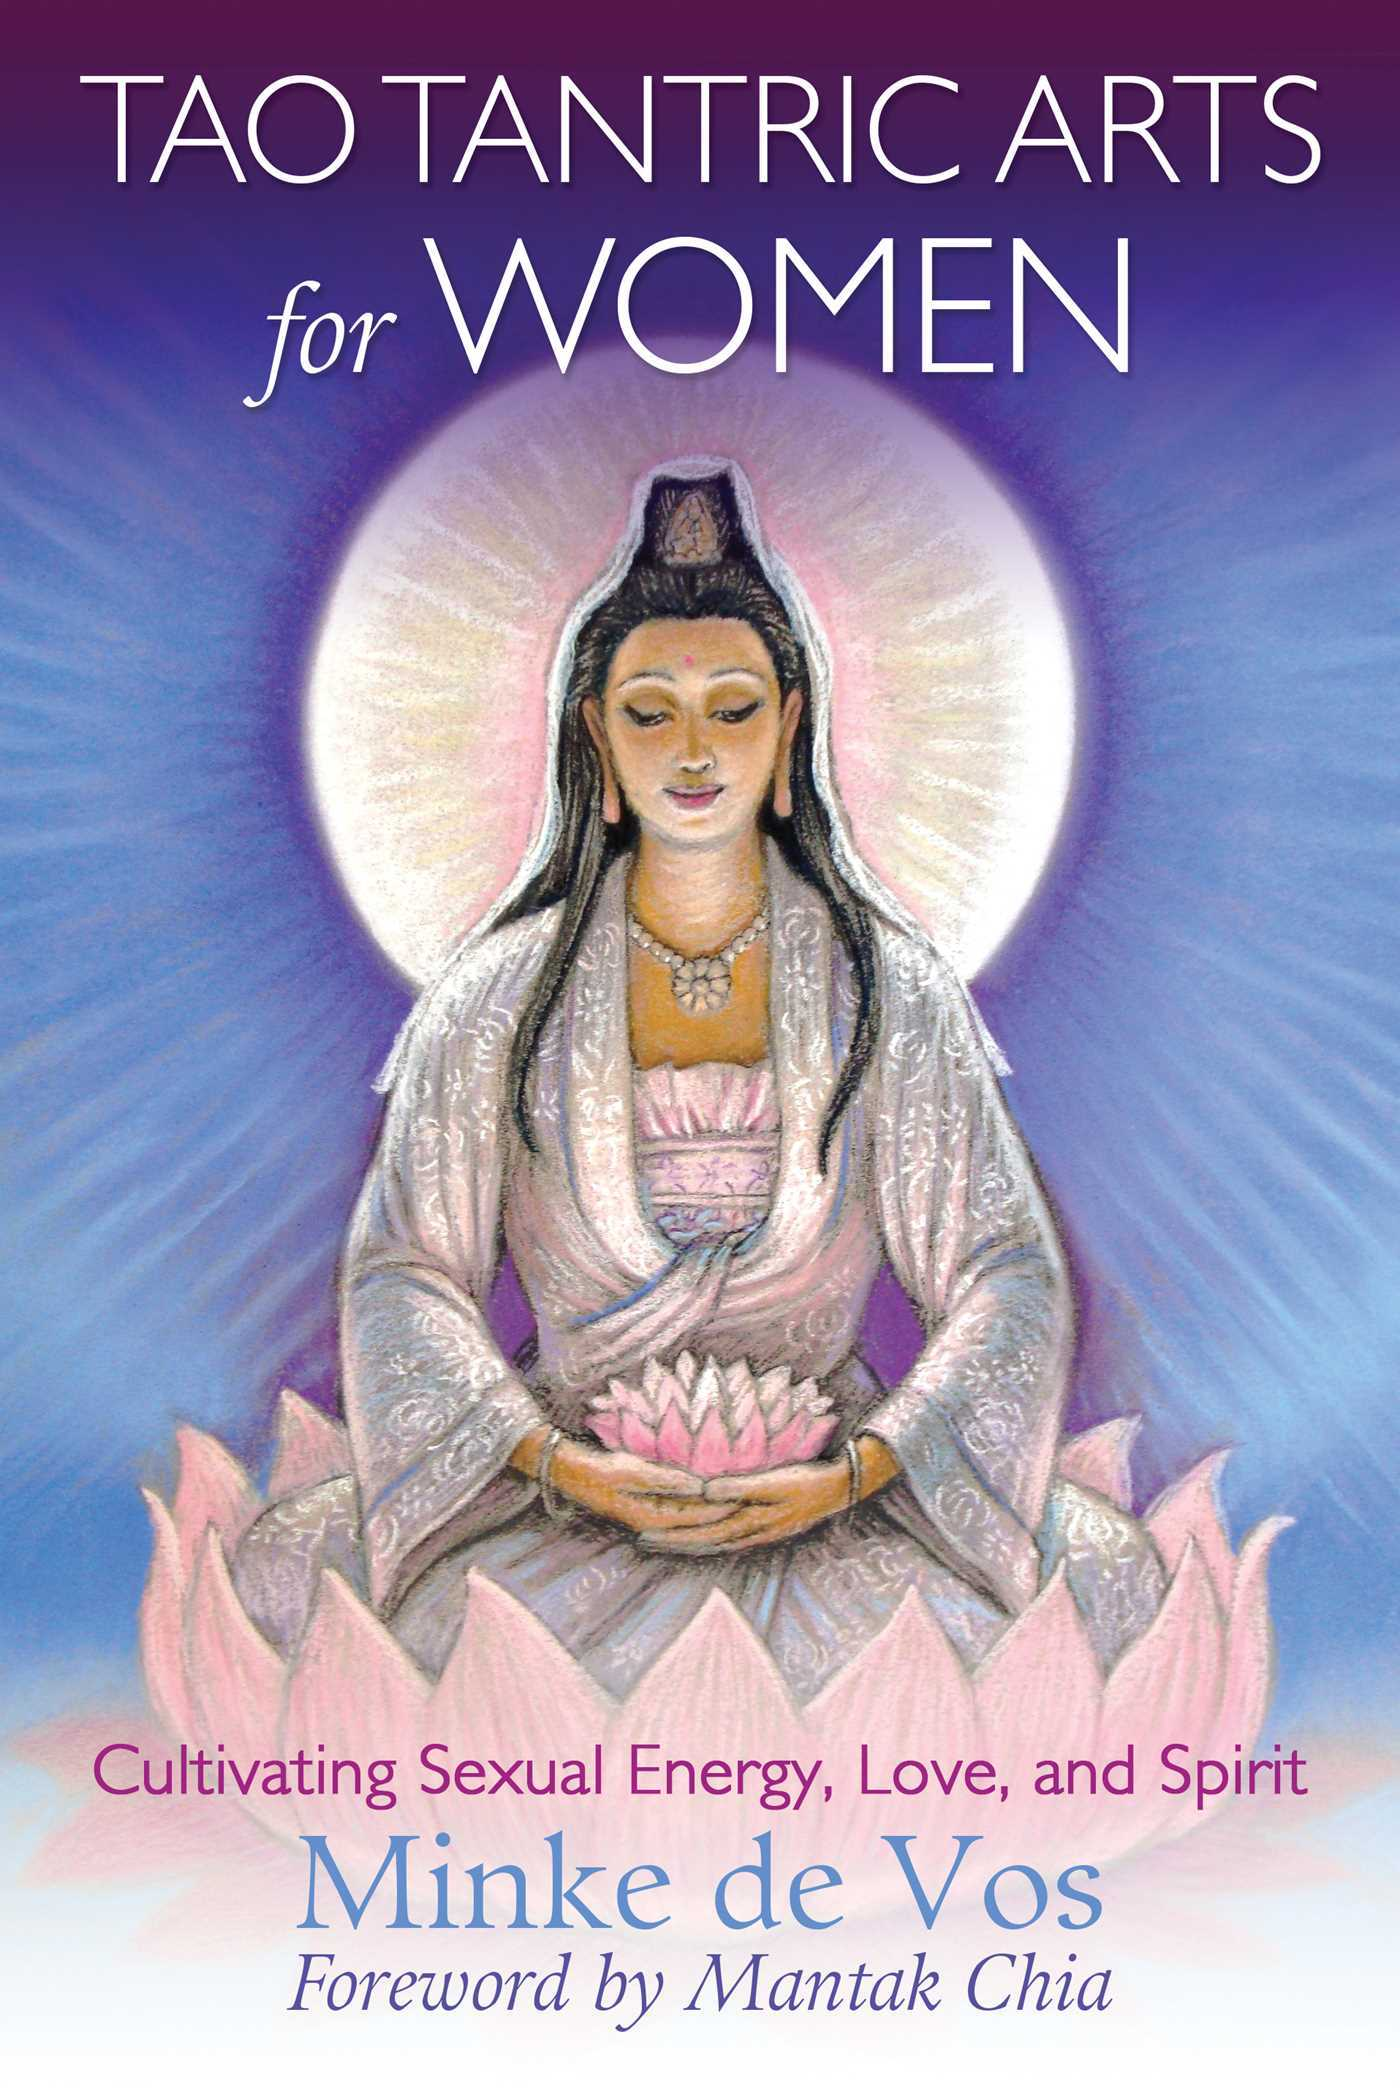 Tao Tantric Arts for Women Cultiva